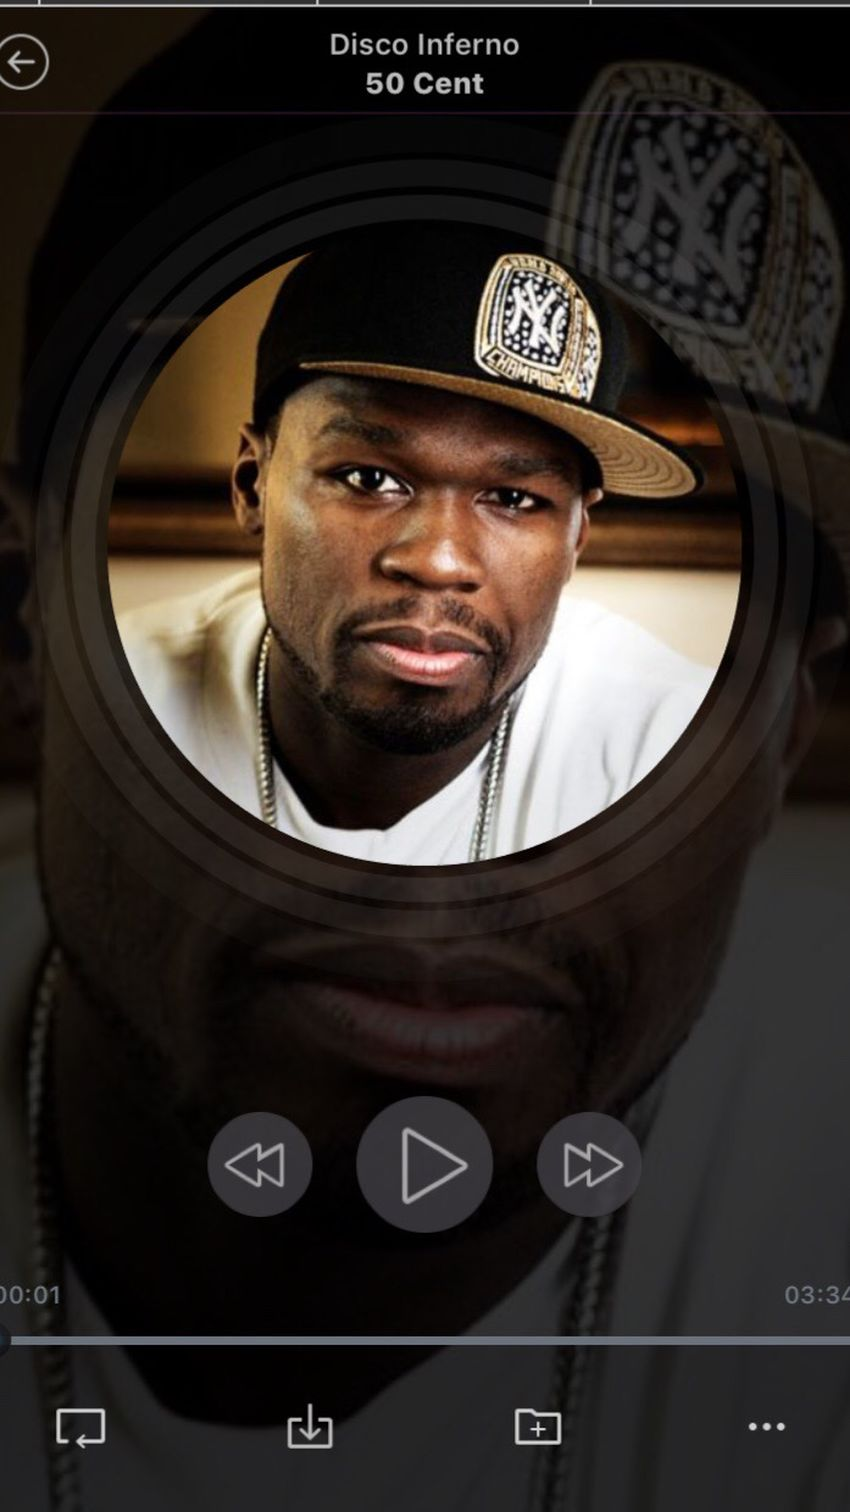 My favorite singer 50cent🤘🏿🤘🏿🤘🏿😎 50cent Discoinferno